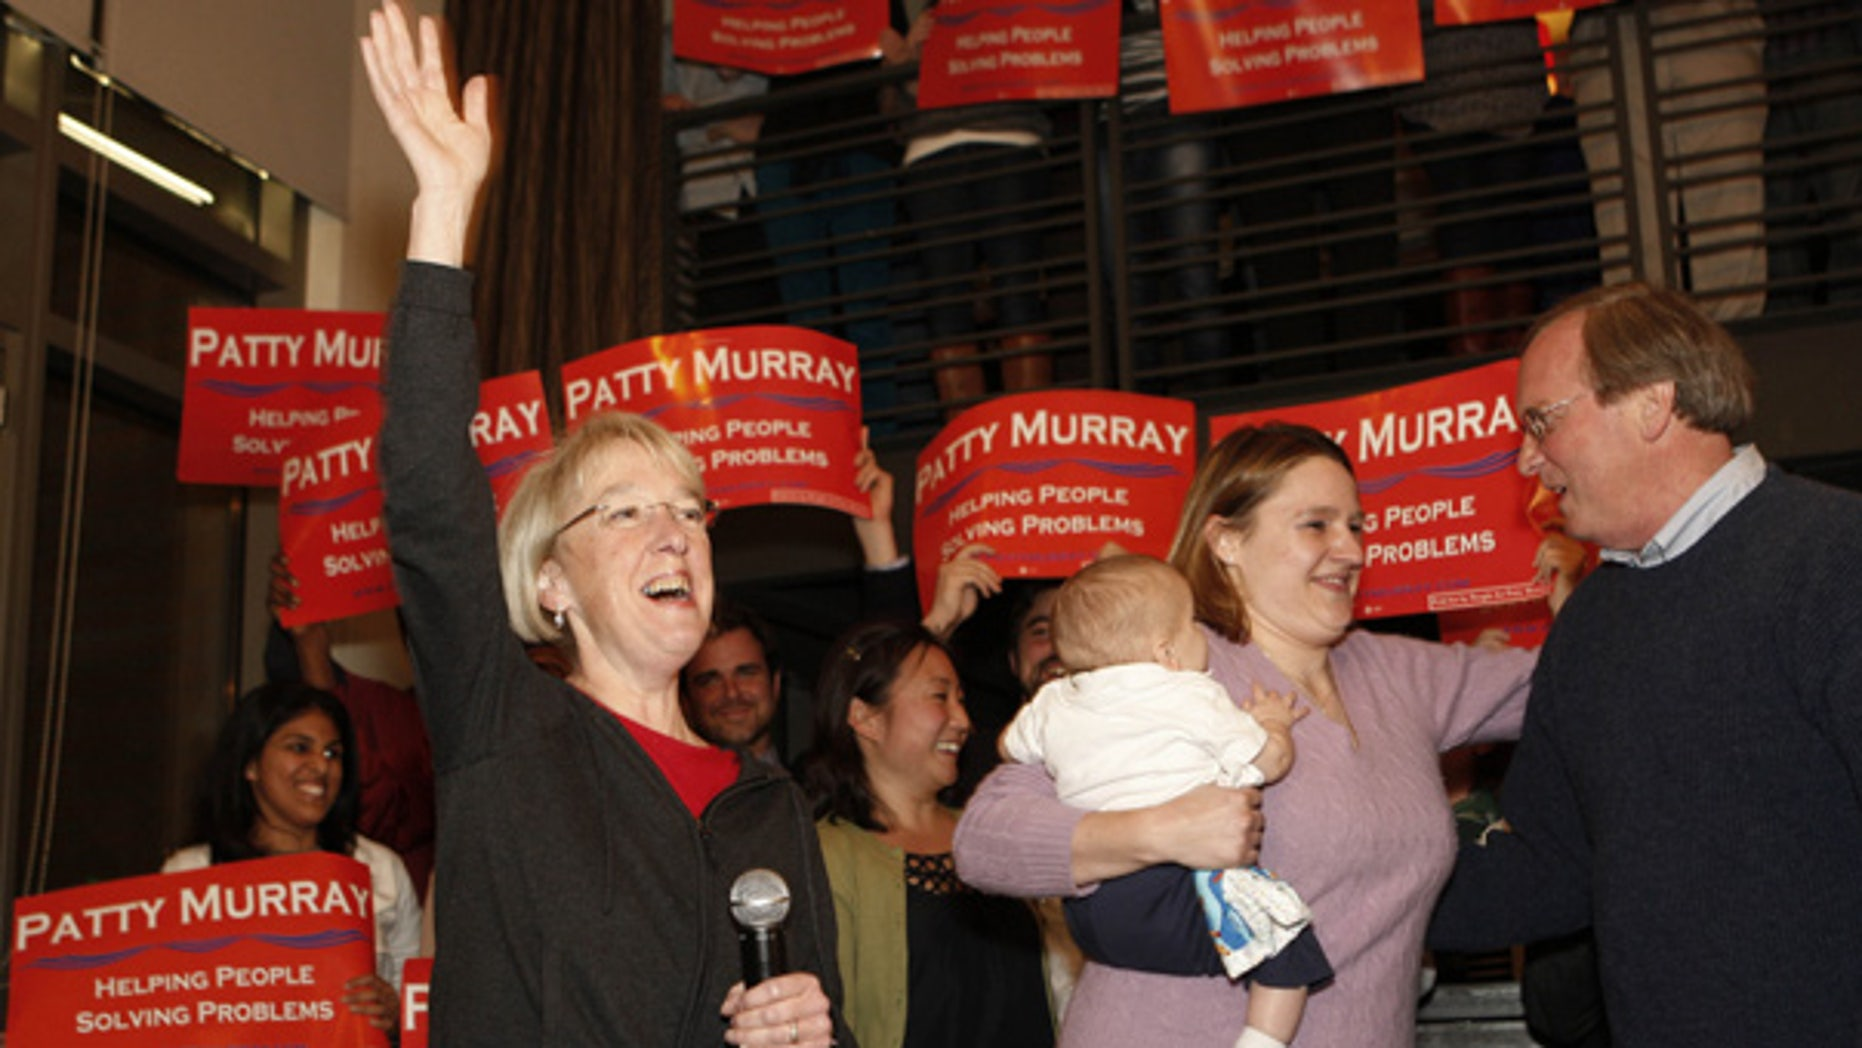 Nov. 4: Sen. Patty Murray celebrates with supporters in Seattle after Republican challenger Dino Rossi conceded.